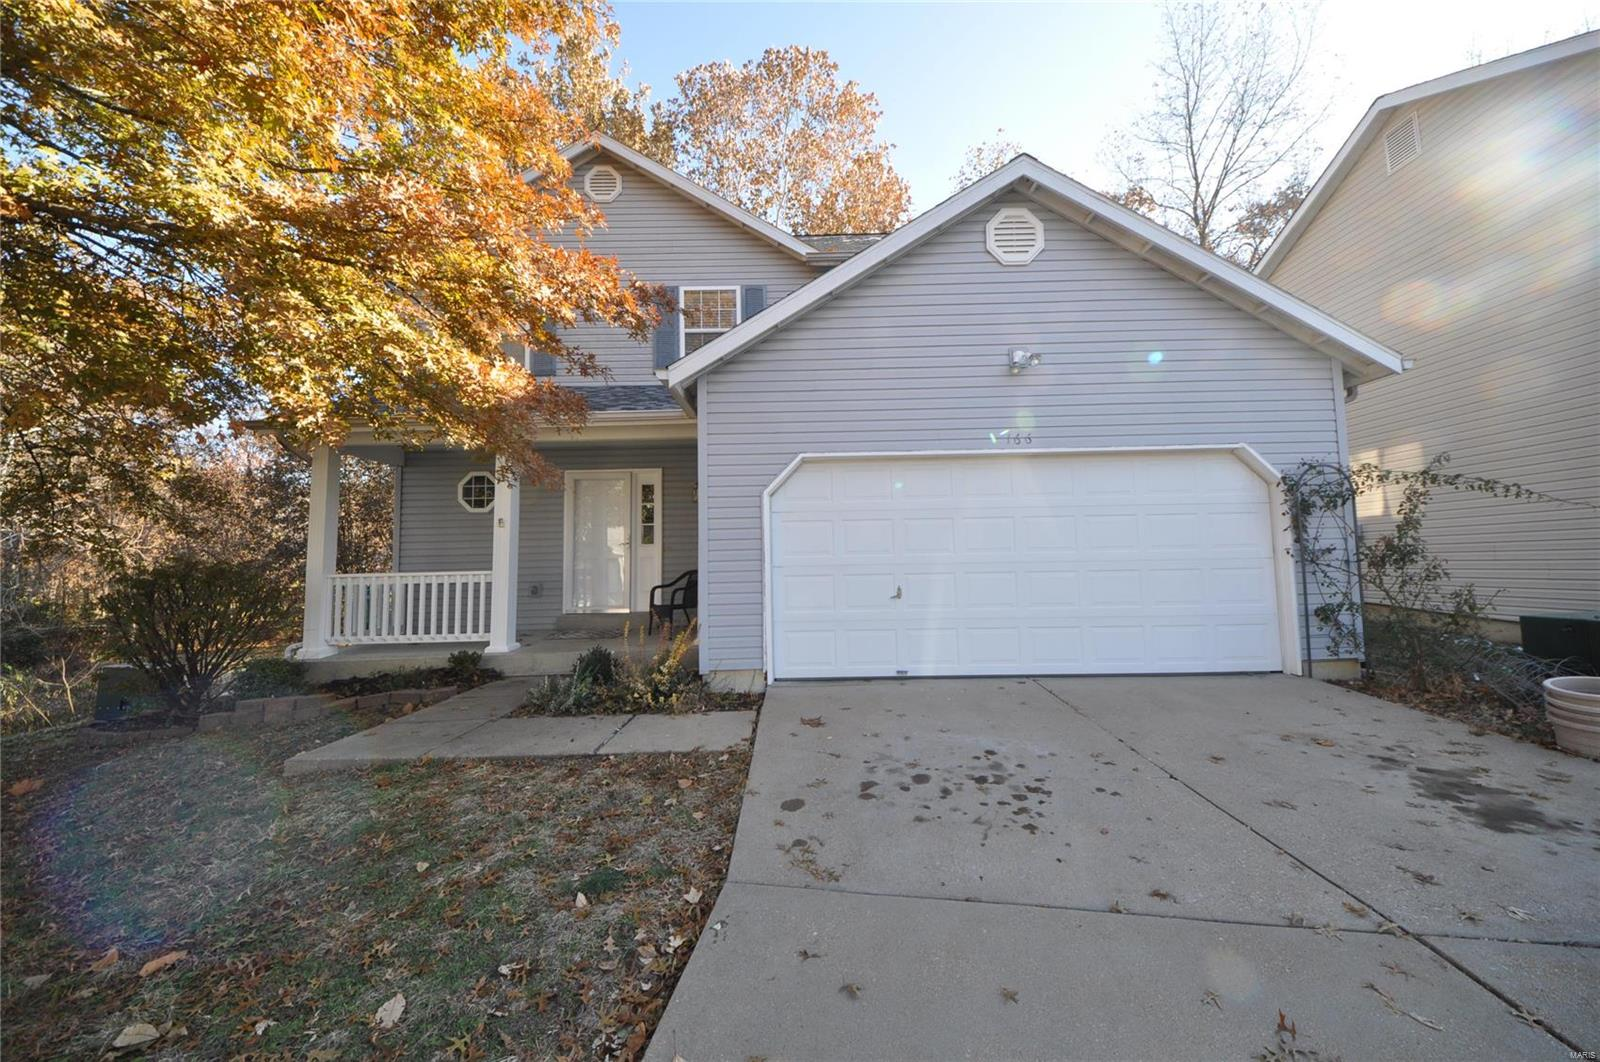 """Beautifully updated 3 BDRM, 2.5 BTH 2 STY home in Parks at Woodlake sub on perfect lot backing to common ground & trees/woods less than 2 miles from HWYs! Exterior includes new roof (2016), freshly painted soffit/fascia (2019), 2 car garage, covered porch & over-sized deck overlooking lot w/HUGE lot of common ground to side & open/wooded ground to back. Updated interior includes open floor plan concept starting with spacious entry foyer. Great rm w/wall to wall bay window & marble WB FP w. Newly renovated eat in kitchen w/center island w/BB, granite counter tops, SS appliances, 42"""" cabinets & bay sliders out to deck. 1/2 bth on main. New laminate flooring throughout main level (Nov 2019). Upper level feat master bdrm suite w/walk in closet & full bth. 2 add'l spacious bdrms & full bath upstairs. Unfinished LL waiting on your finishing touches! More updates include freshly painted interior (2019) & new ceiling fans (2019). Includes ALL Lake Saint Louis lake amenities! MUST SEE!"""